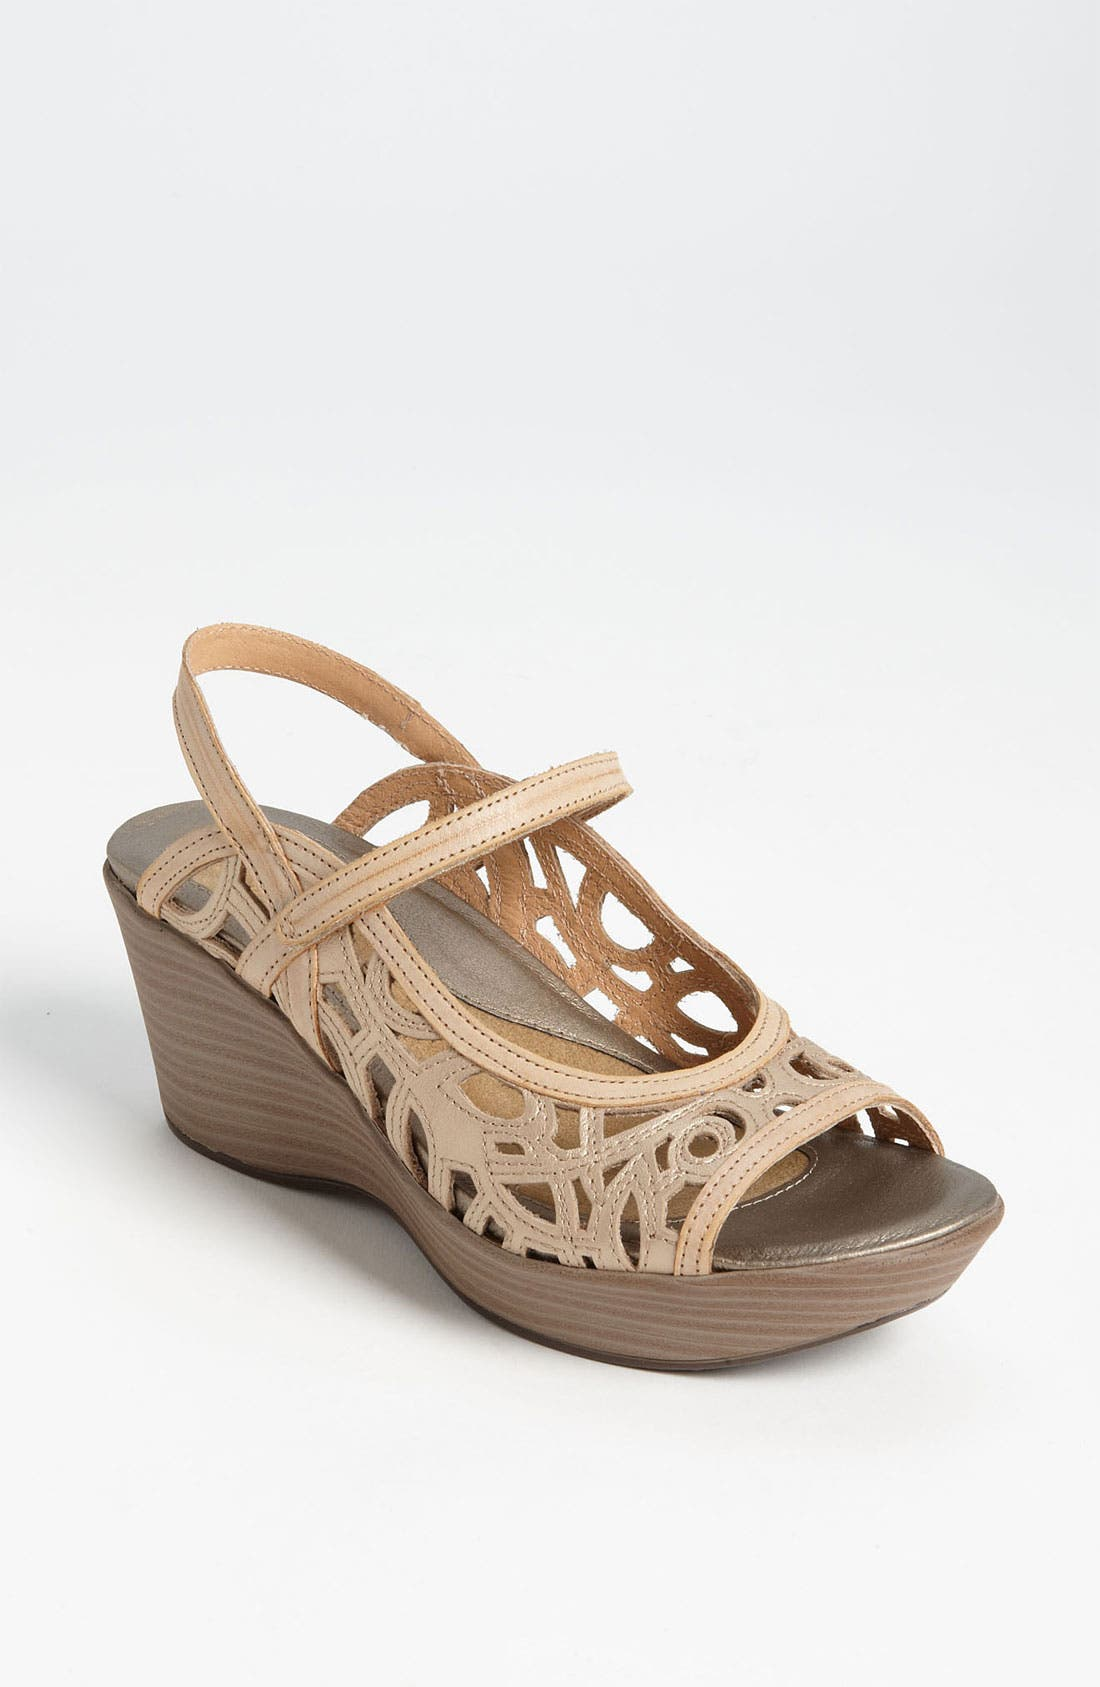 Alternate Image 1 Selected - Naot 'Deluxe' Sandal